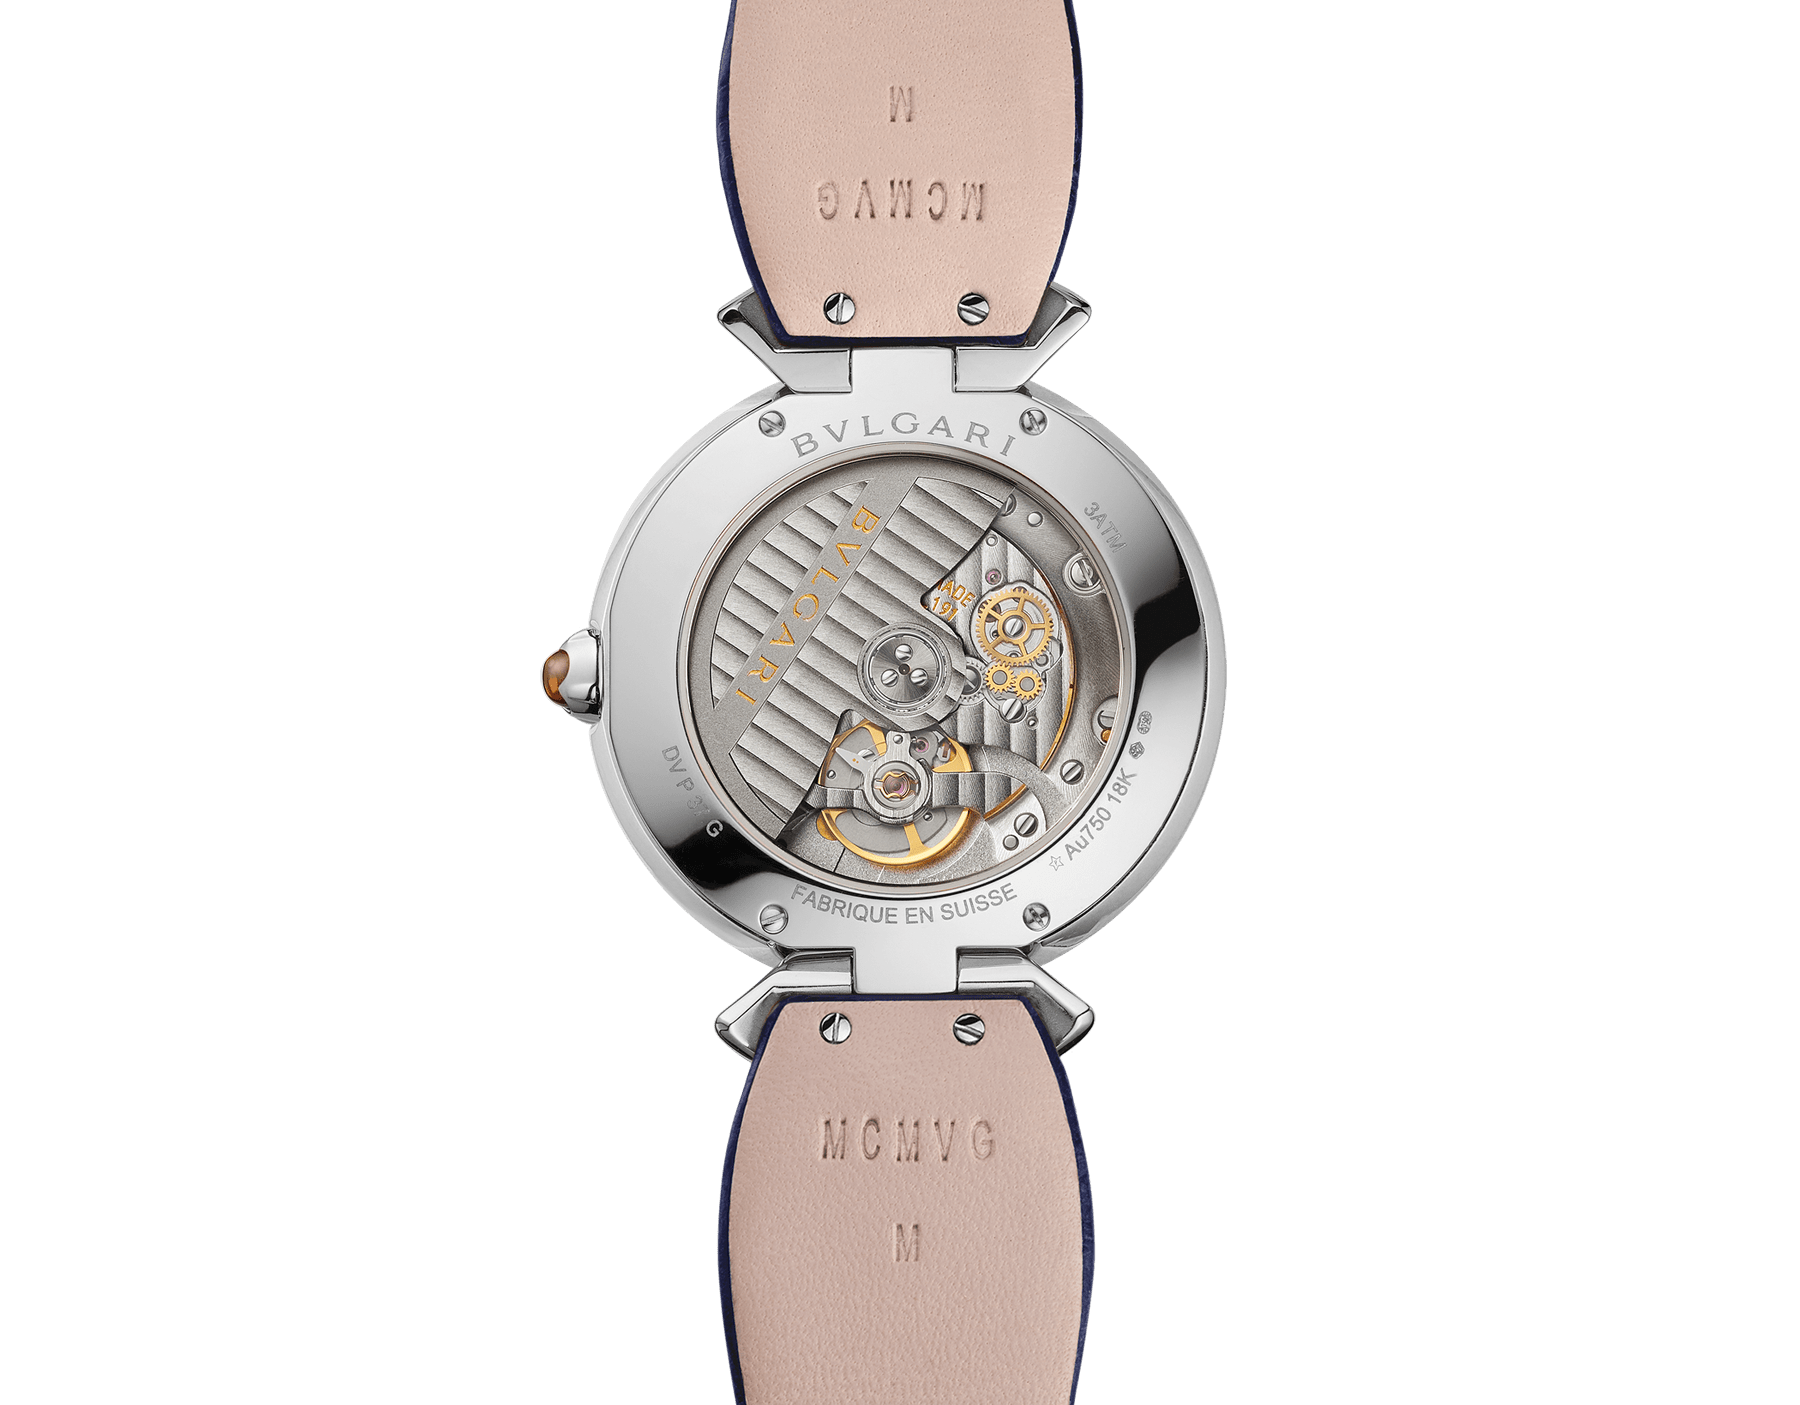 DIVAS' DREAM watch with mechanical manufacture movement, automatic winding, 18 kt white gold case, 18 kt white gold bezel and fan-shaped links both set with brilliant-cut diamonds, natural peacock feather dial and blue alligator bracelet 103263 image 5